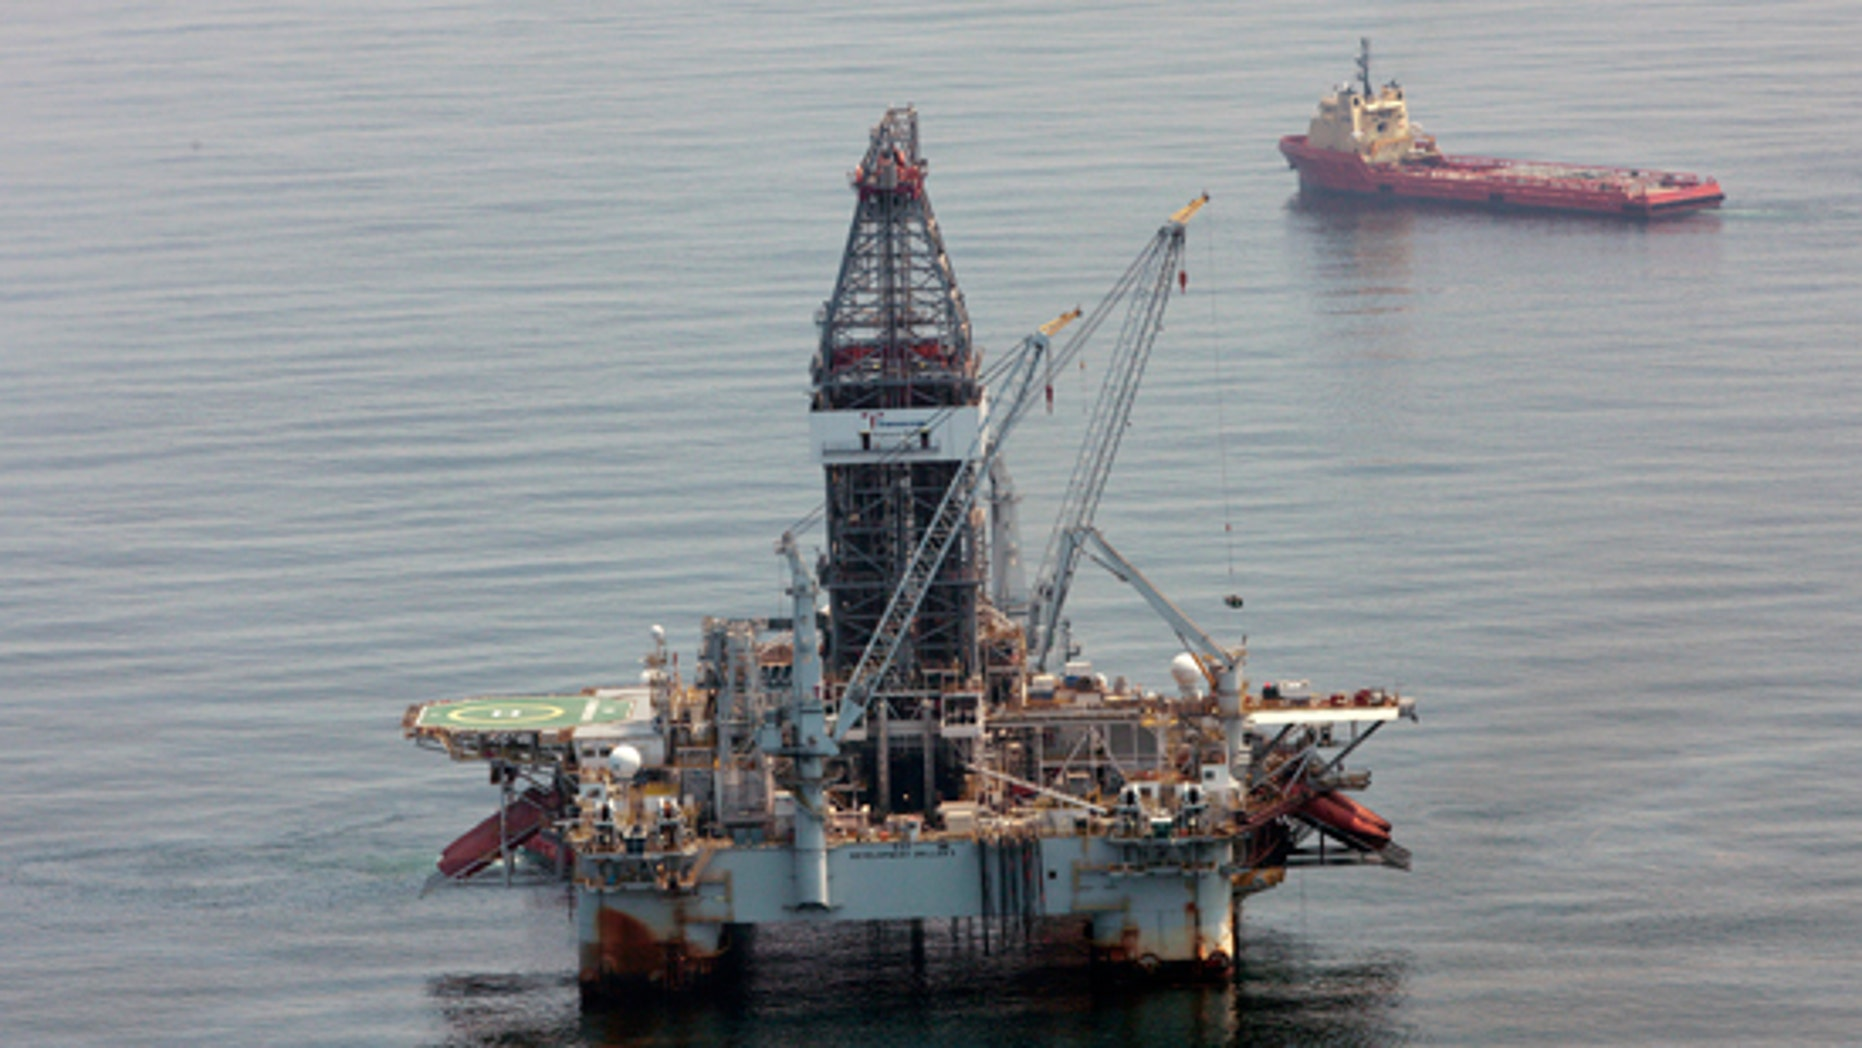 In a Tuesday, June 8, 2010 photo, a deepwater drilling rig operates near the site of the Deepwater Horizon disaster in the Gulf of Mexico. (AP)